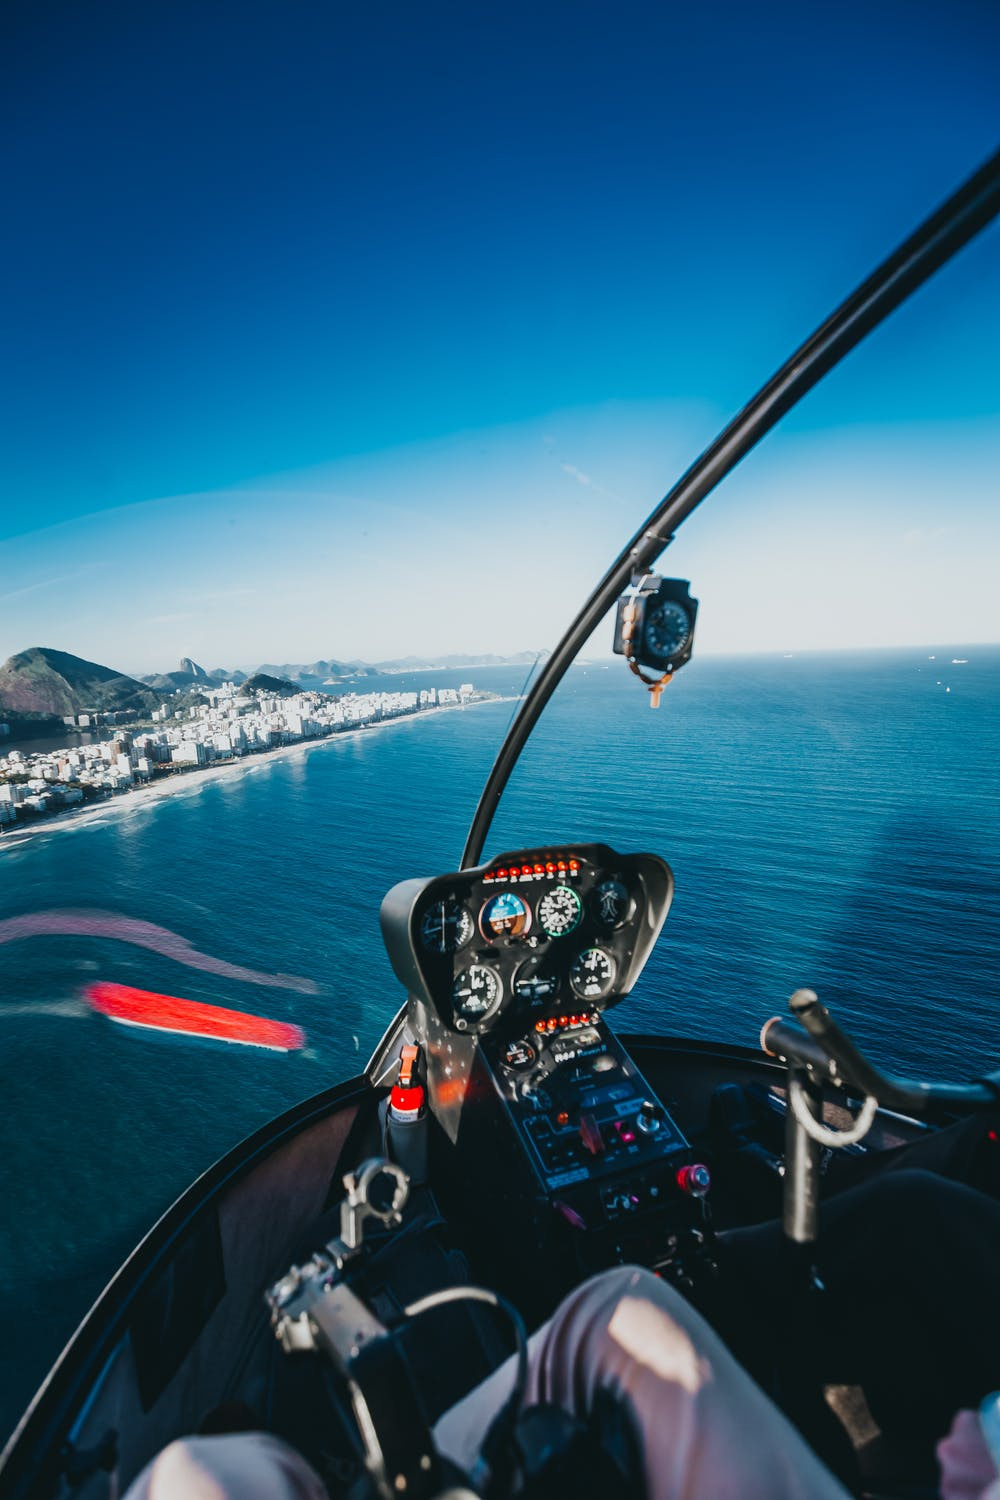 Premier Accredited Helicopter Flight School & Charter Business